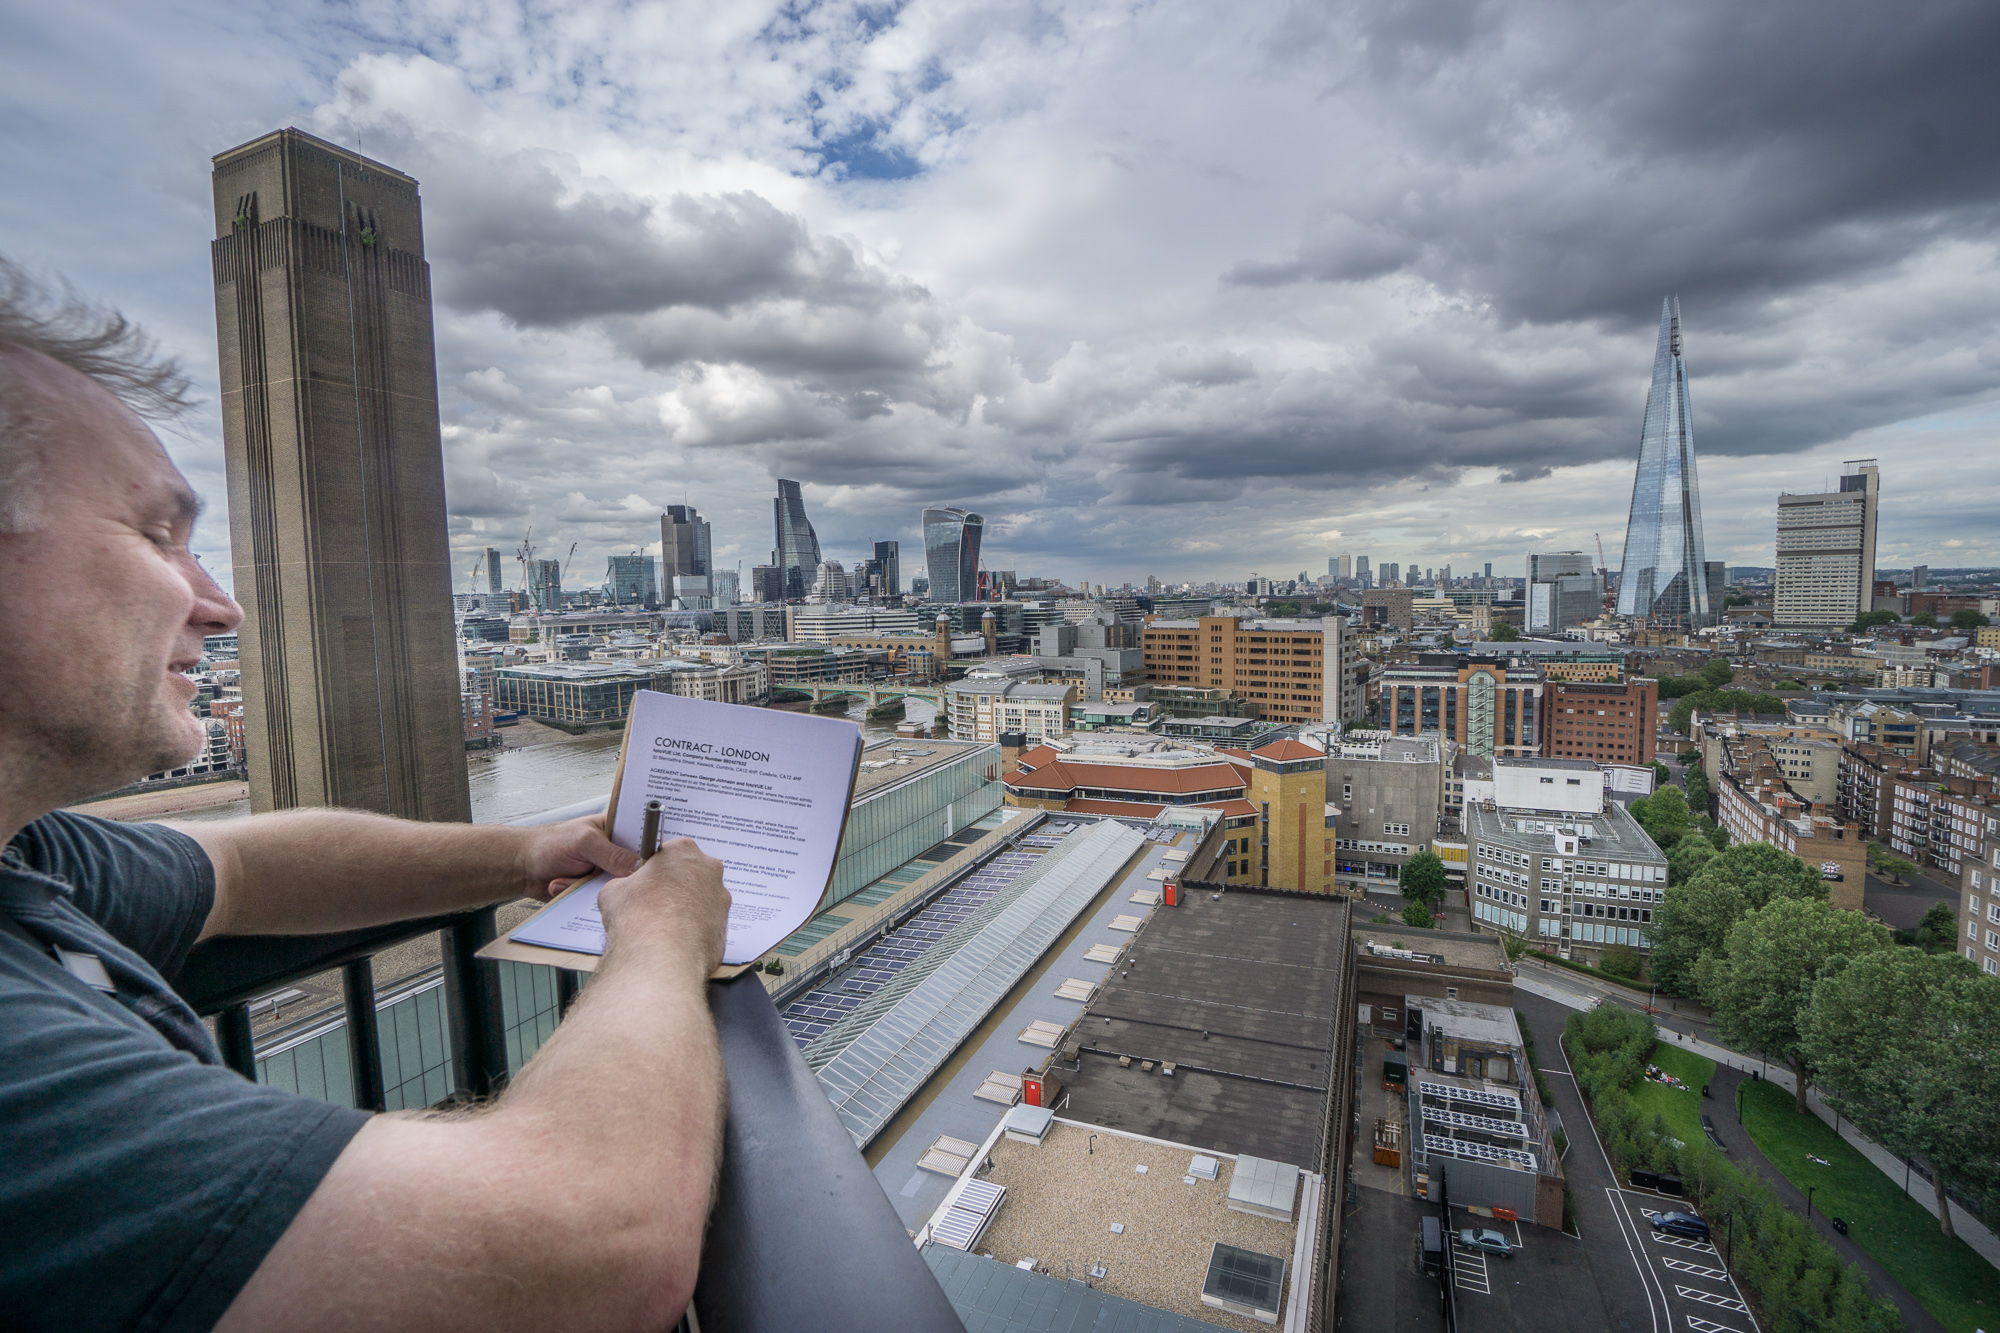 George, London author signing his contract high above London on the new Switch House building at the Tate Modern.